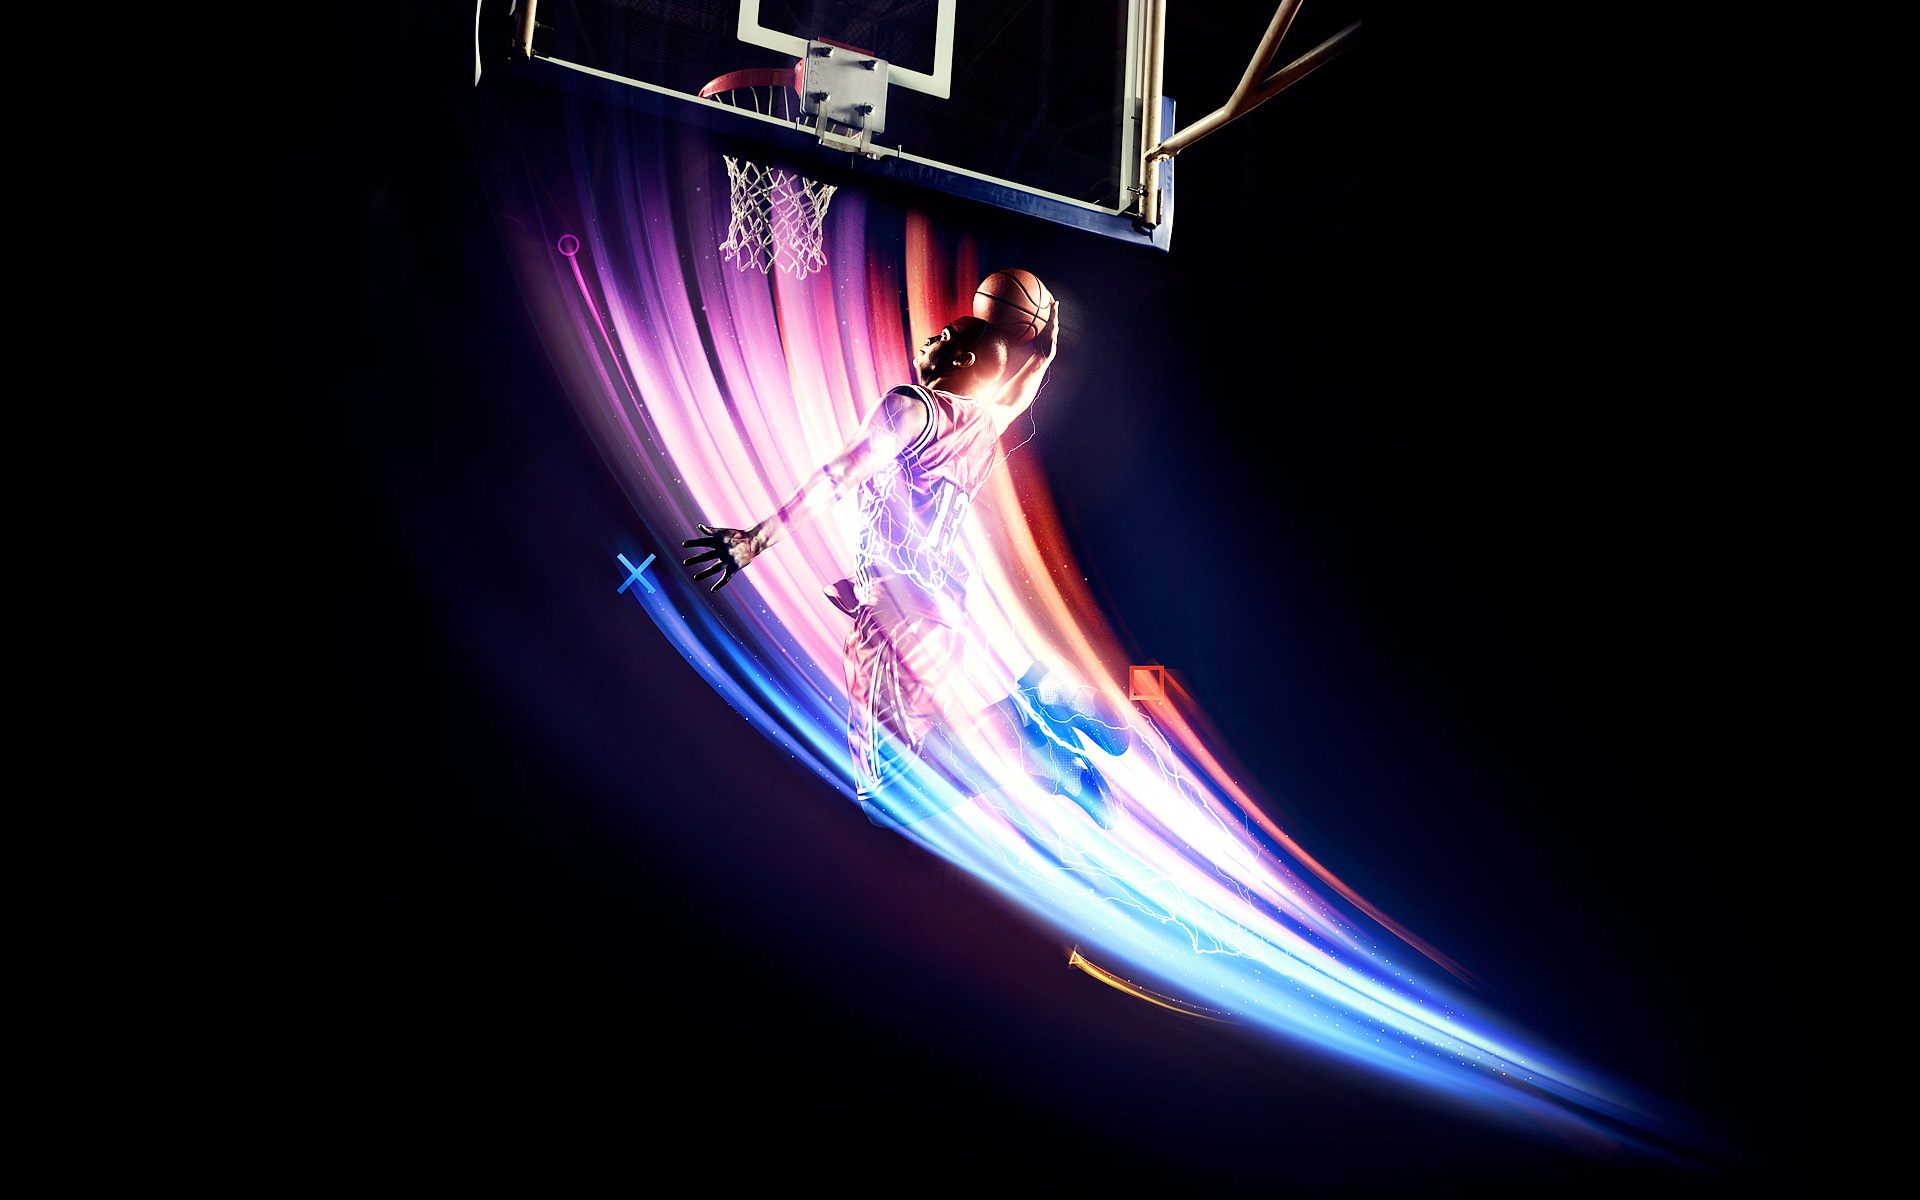 Cool Basketball Wallpapers The Art Mad Wallpapers 1920x1200